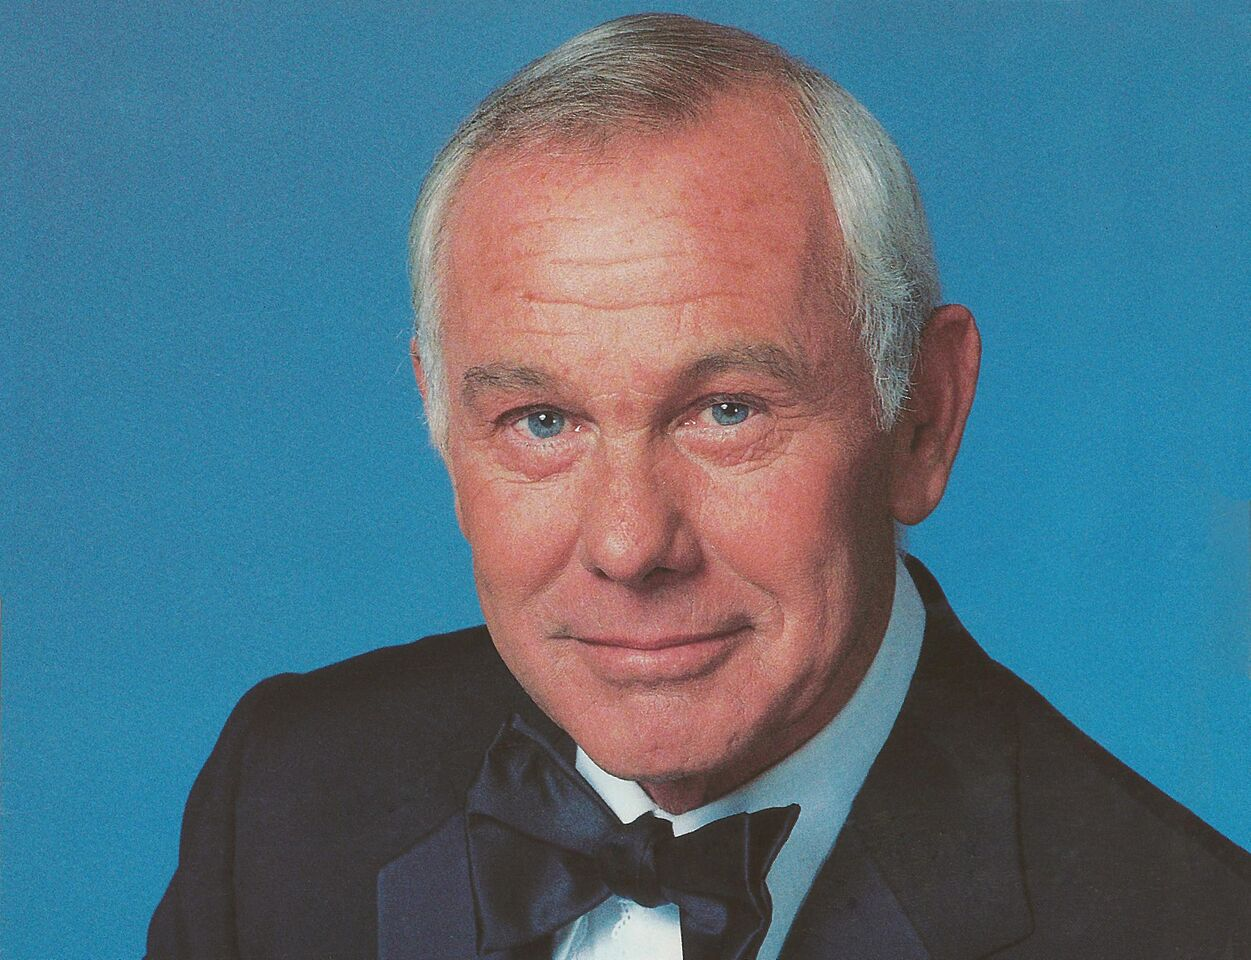 20m Gift To Create Johnny Carson Center For Emerging